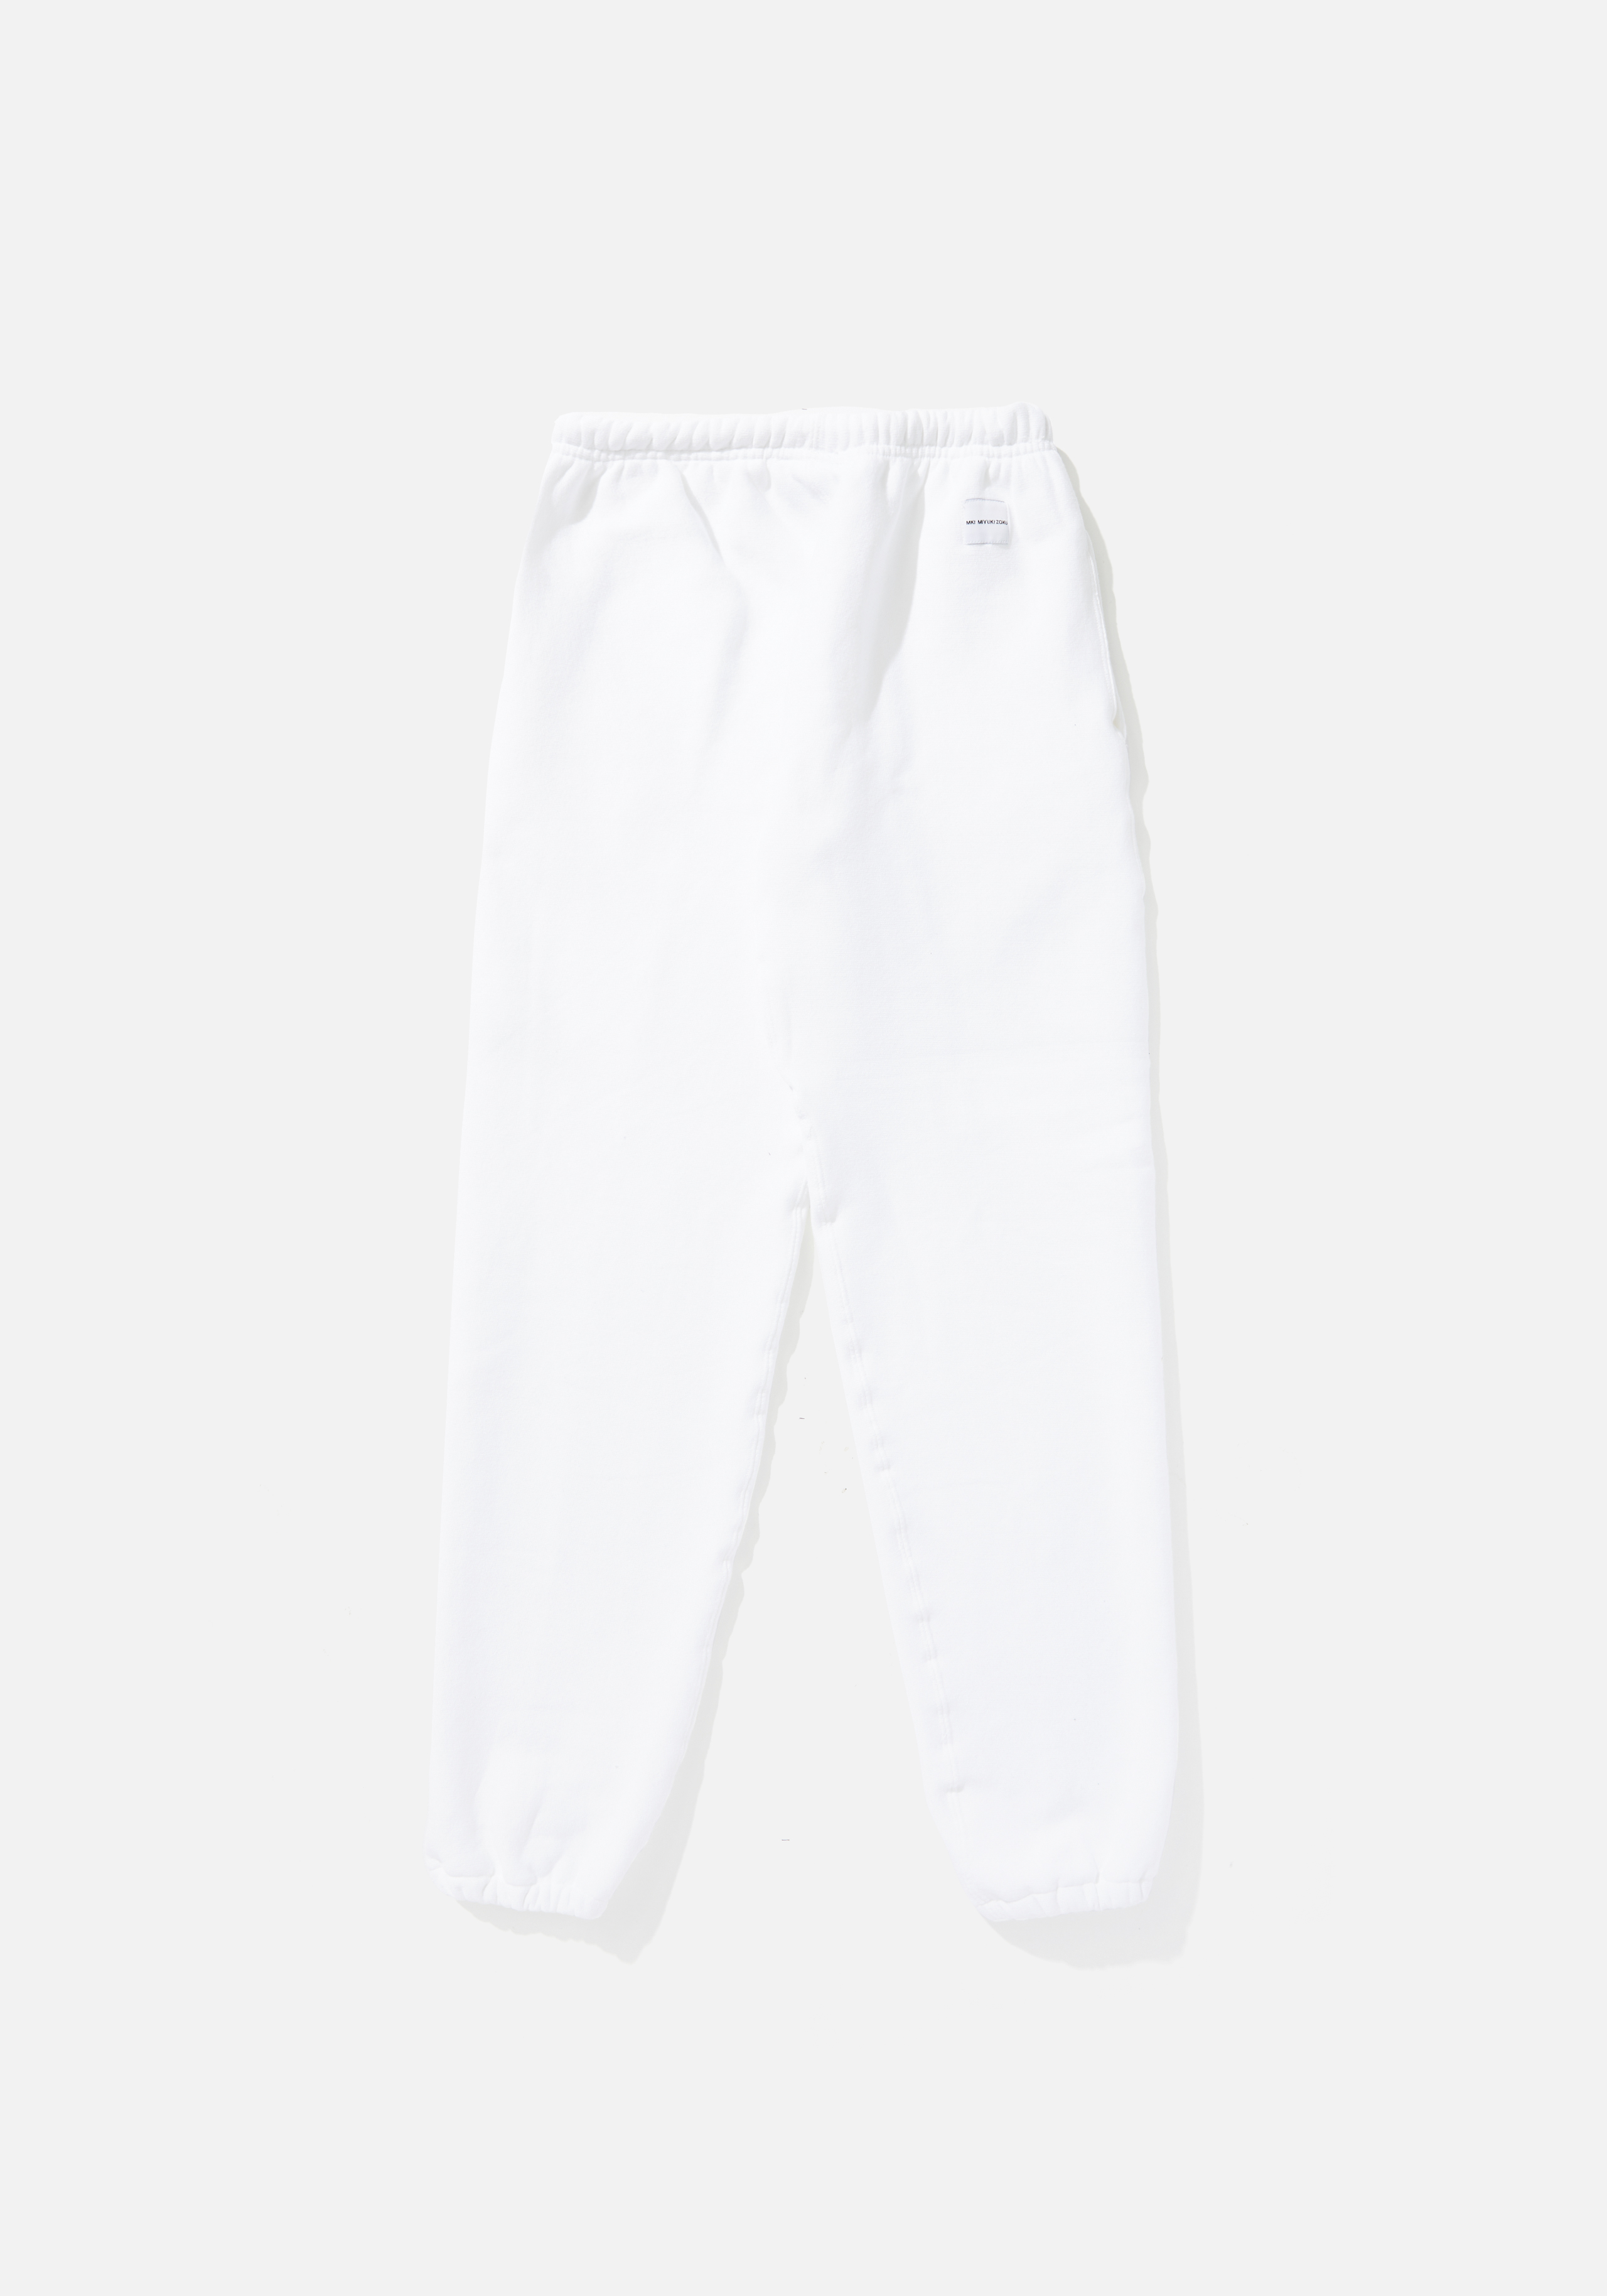 mki 12oz heavyweight track pant made in usa 2